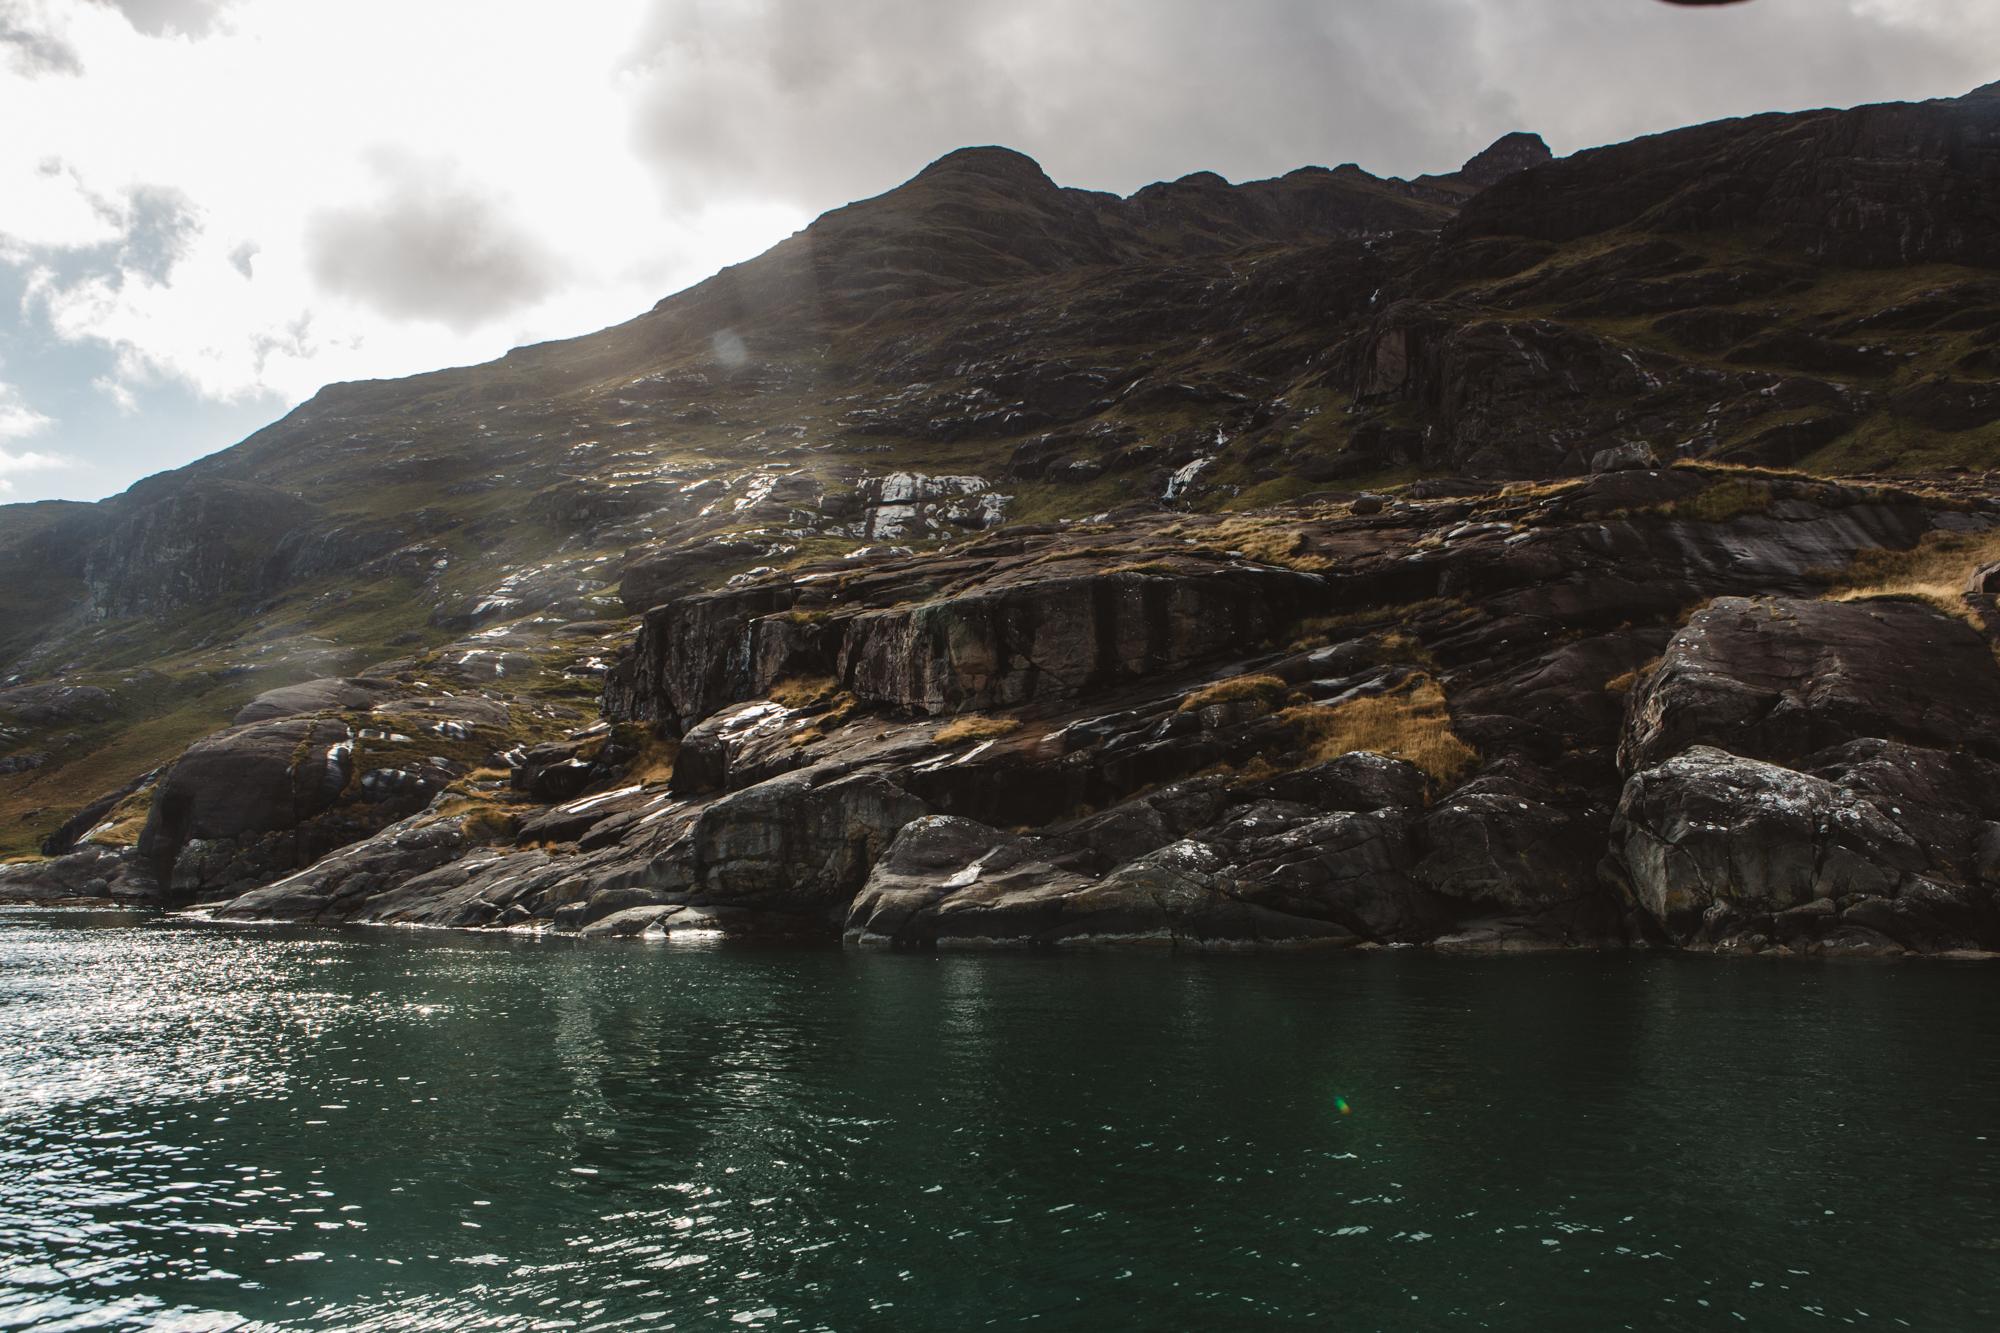 View from wheelhouse of Misty Isle boat to Cuillin